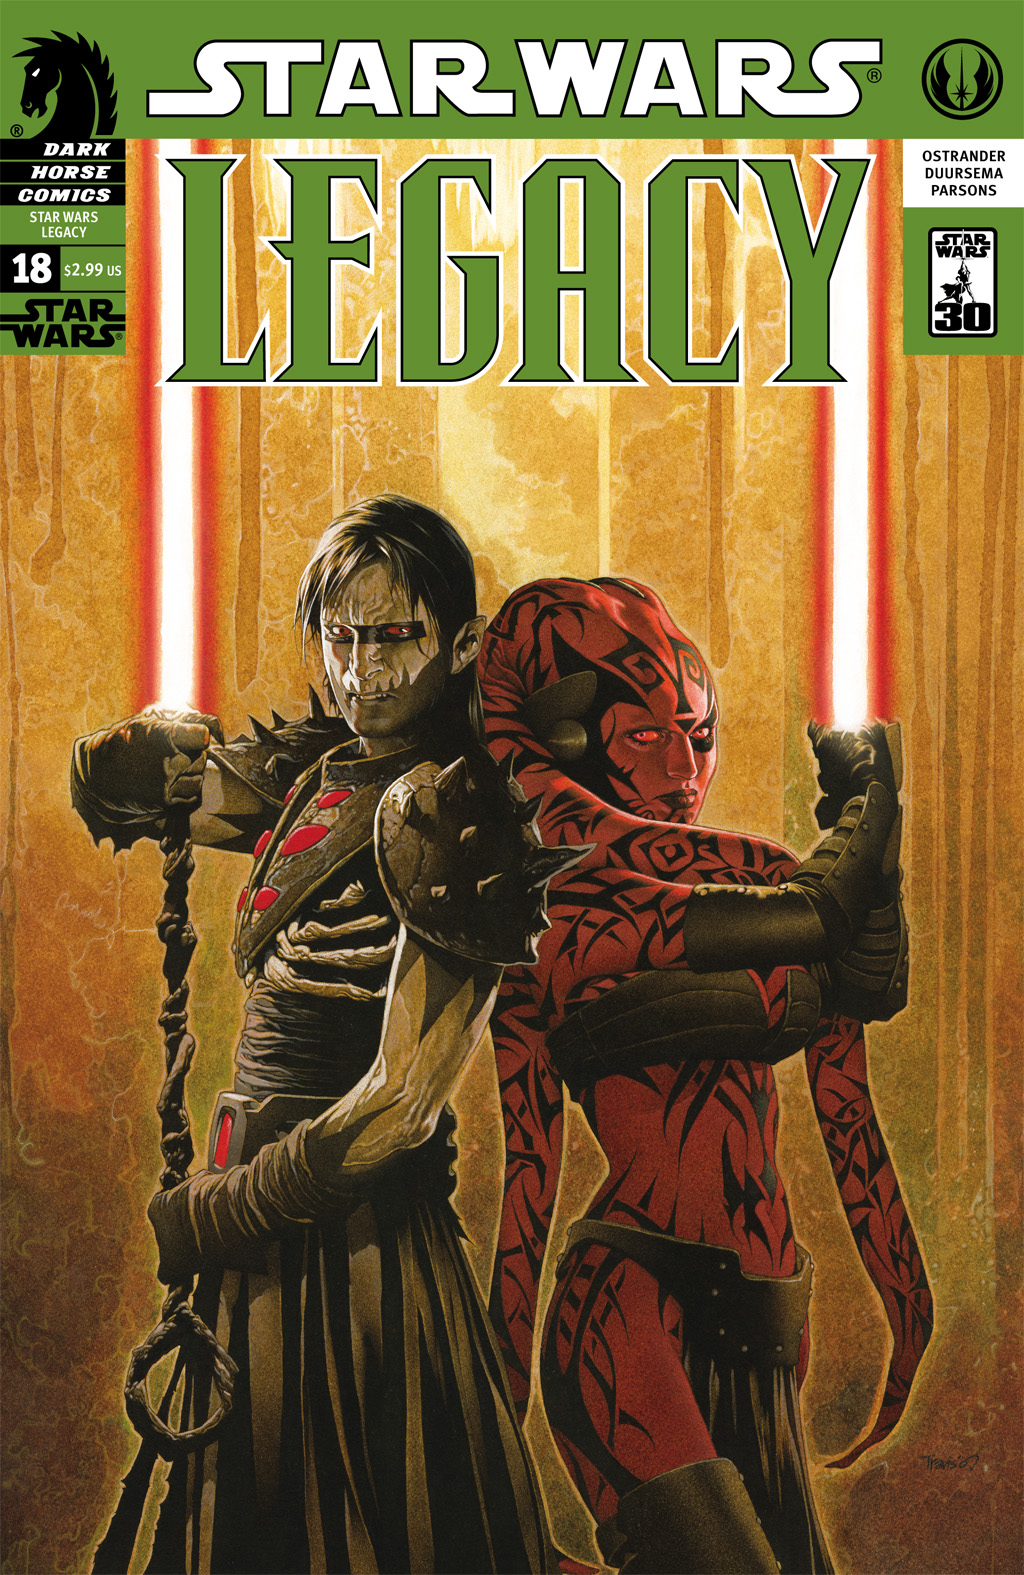 Star Wars: Legacy (2006) issue 18 - Page 1